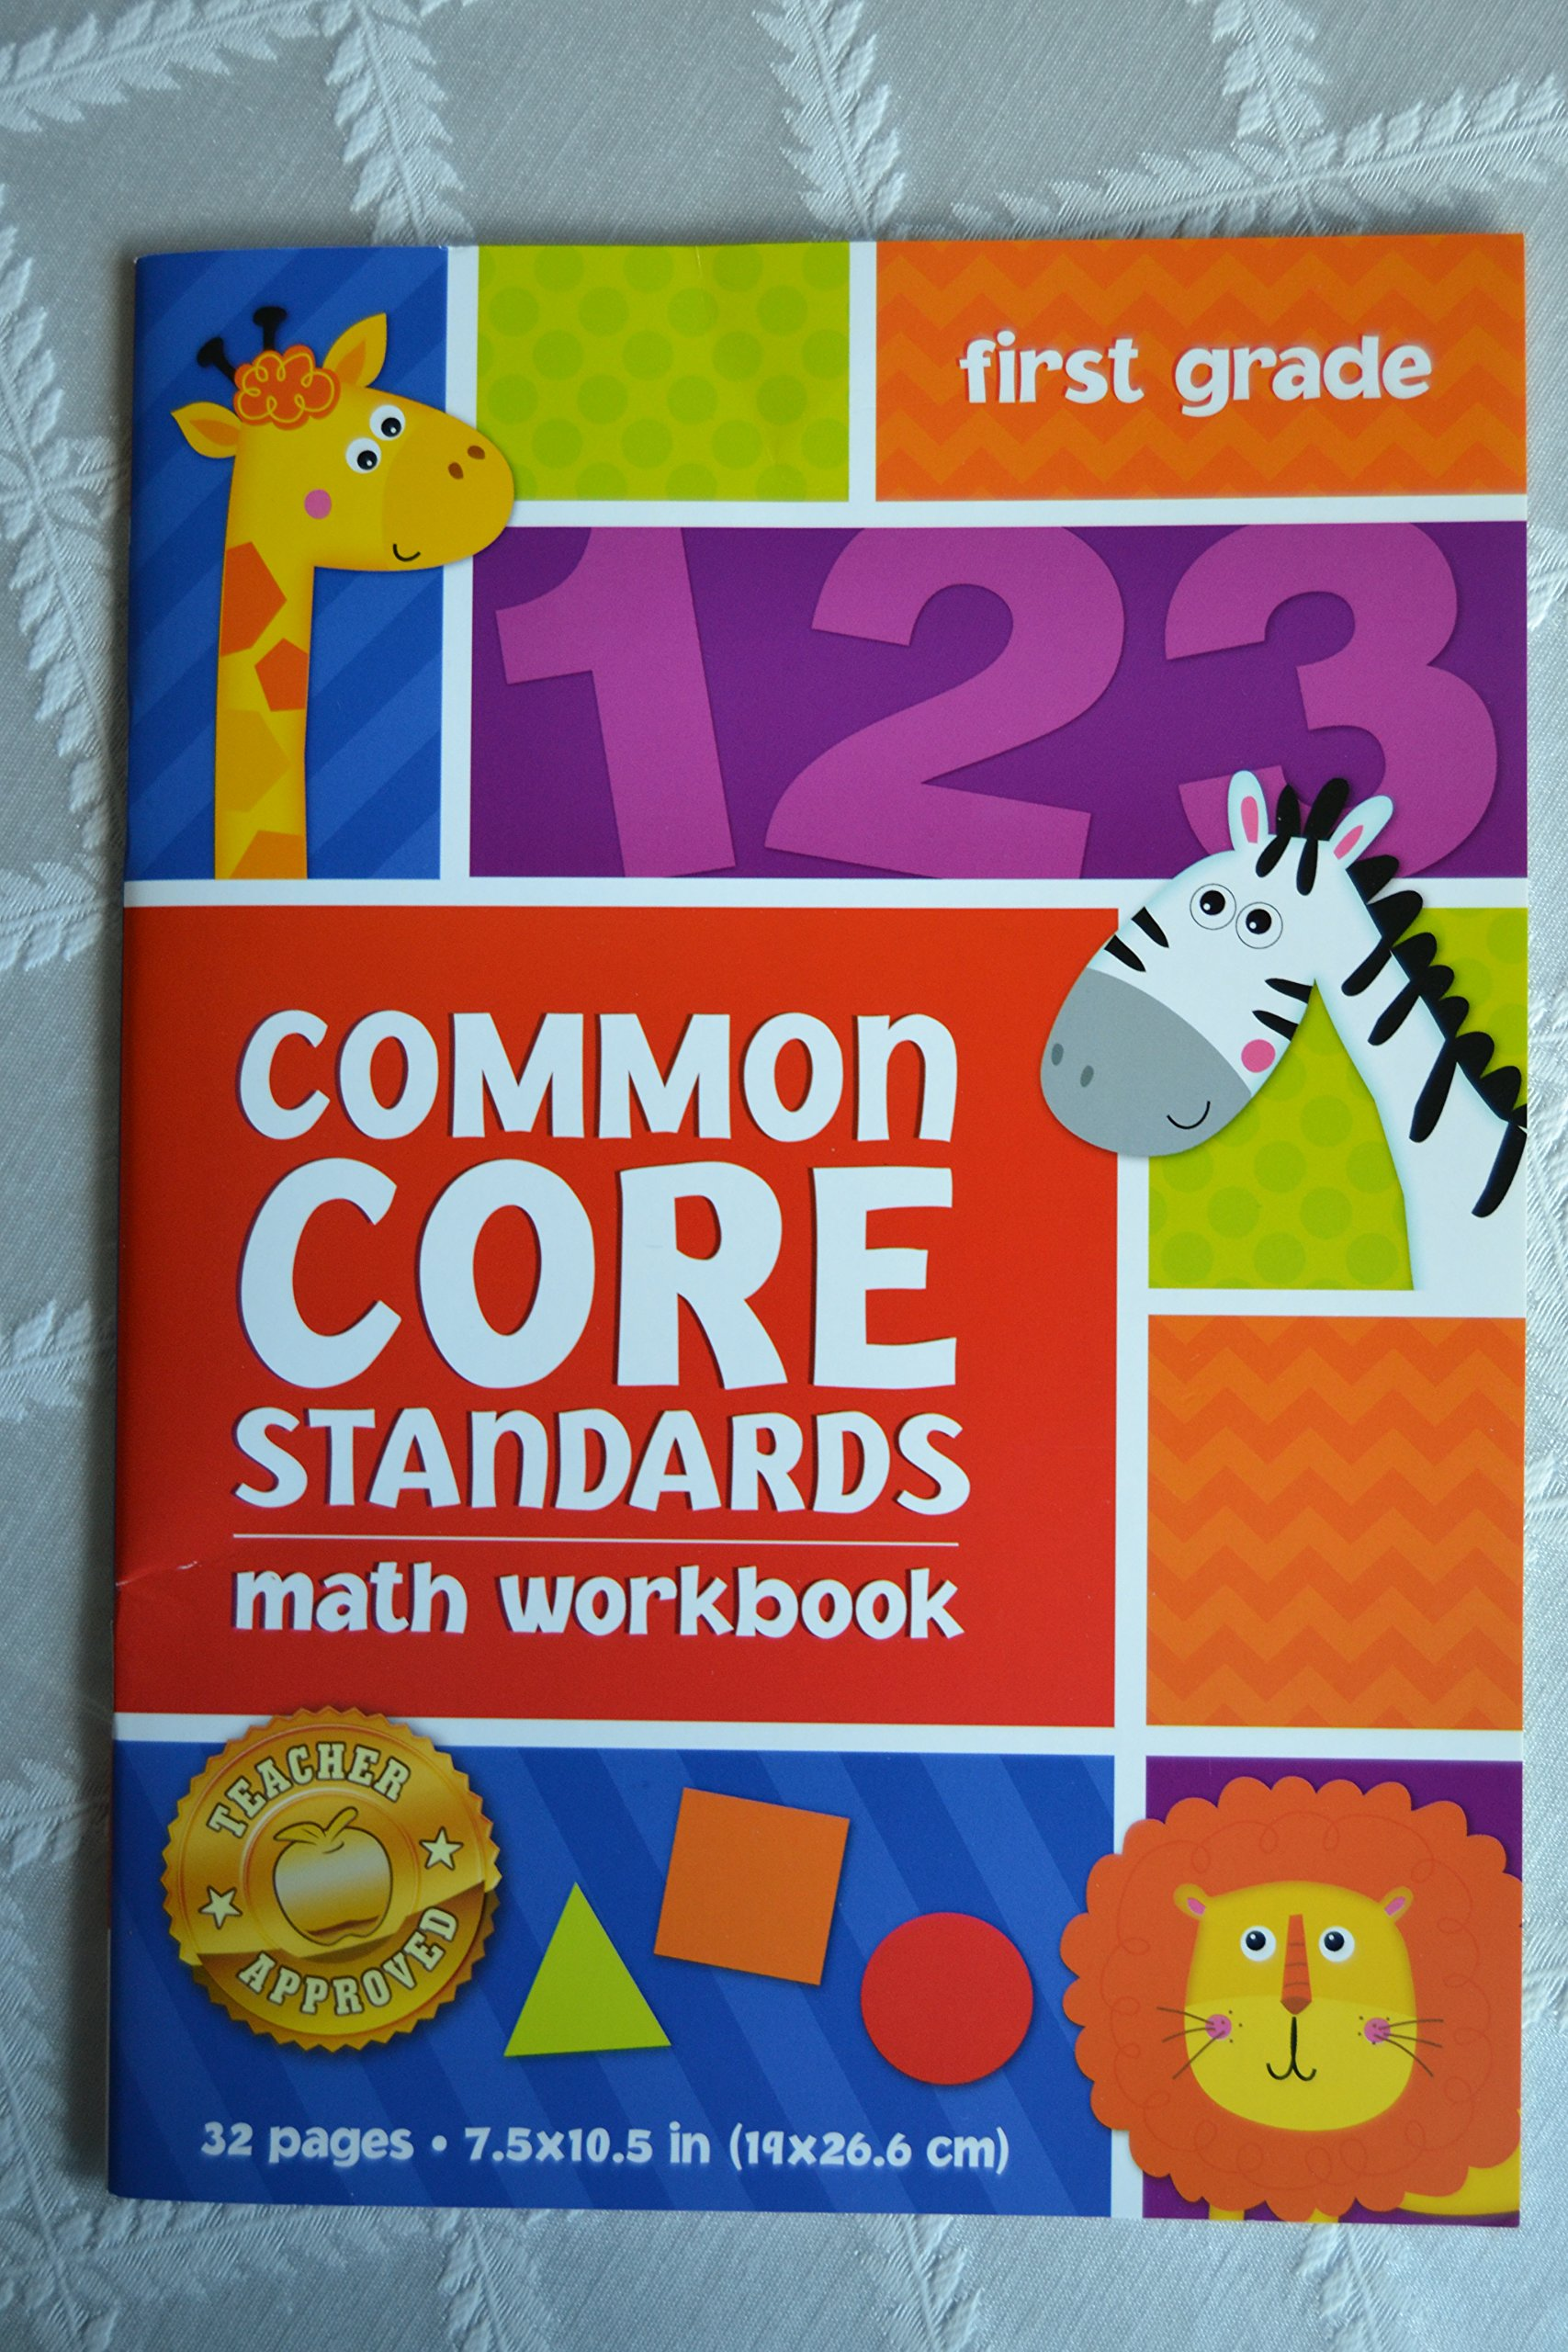 Worksheet First Grade Math Books amazon com common core standards first grade math workbook the clever factory books